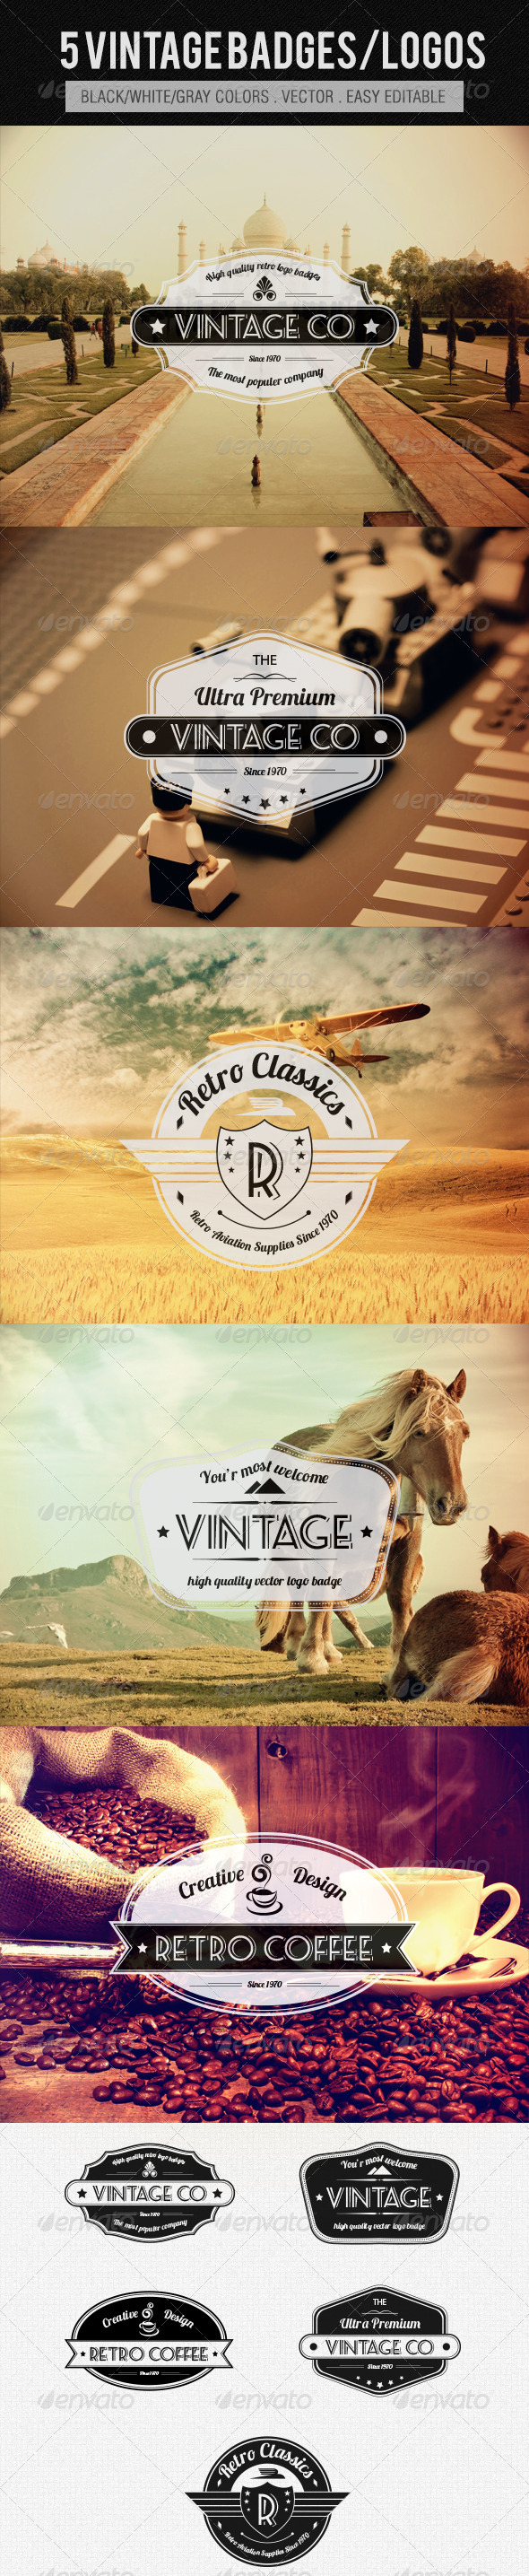 GraphicRiver Vintage Logos Badges 4360451